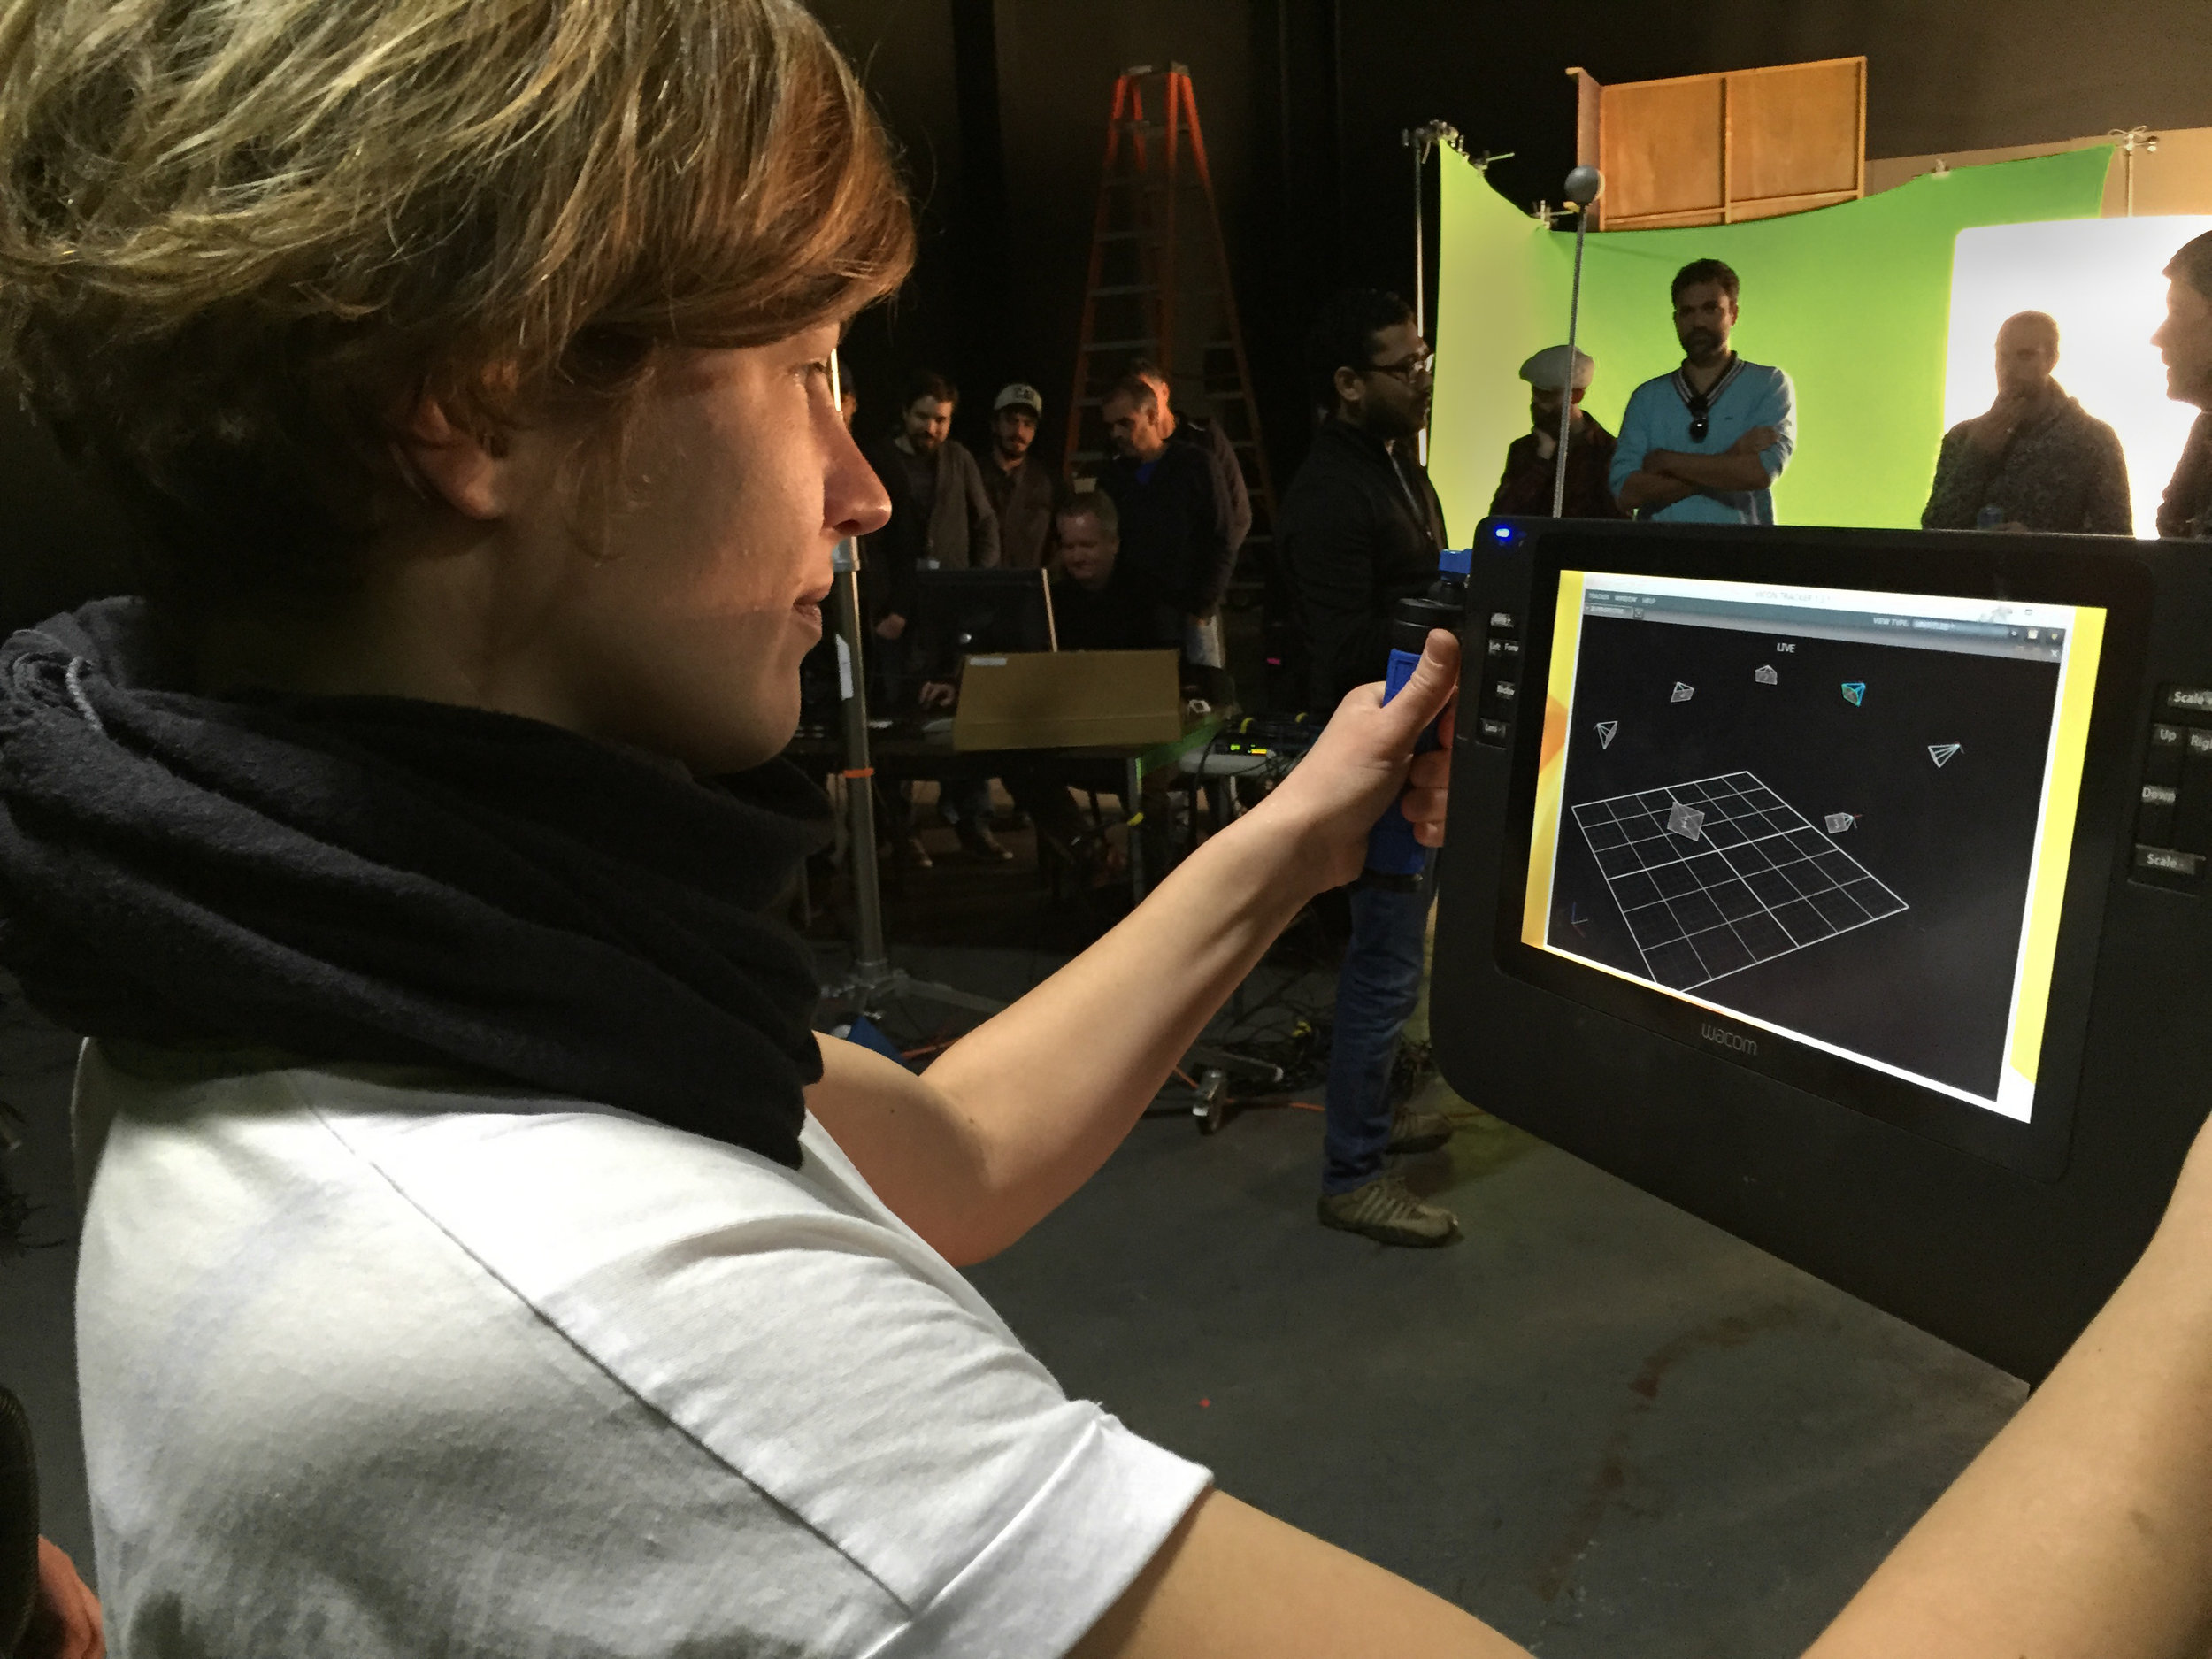 G.C.I. Student using a virtual camera during an on-set cinematography workshop